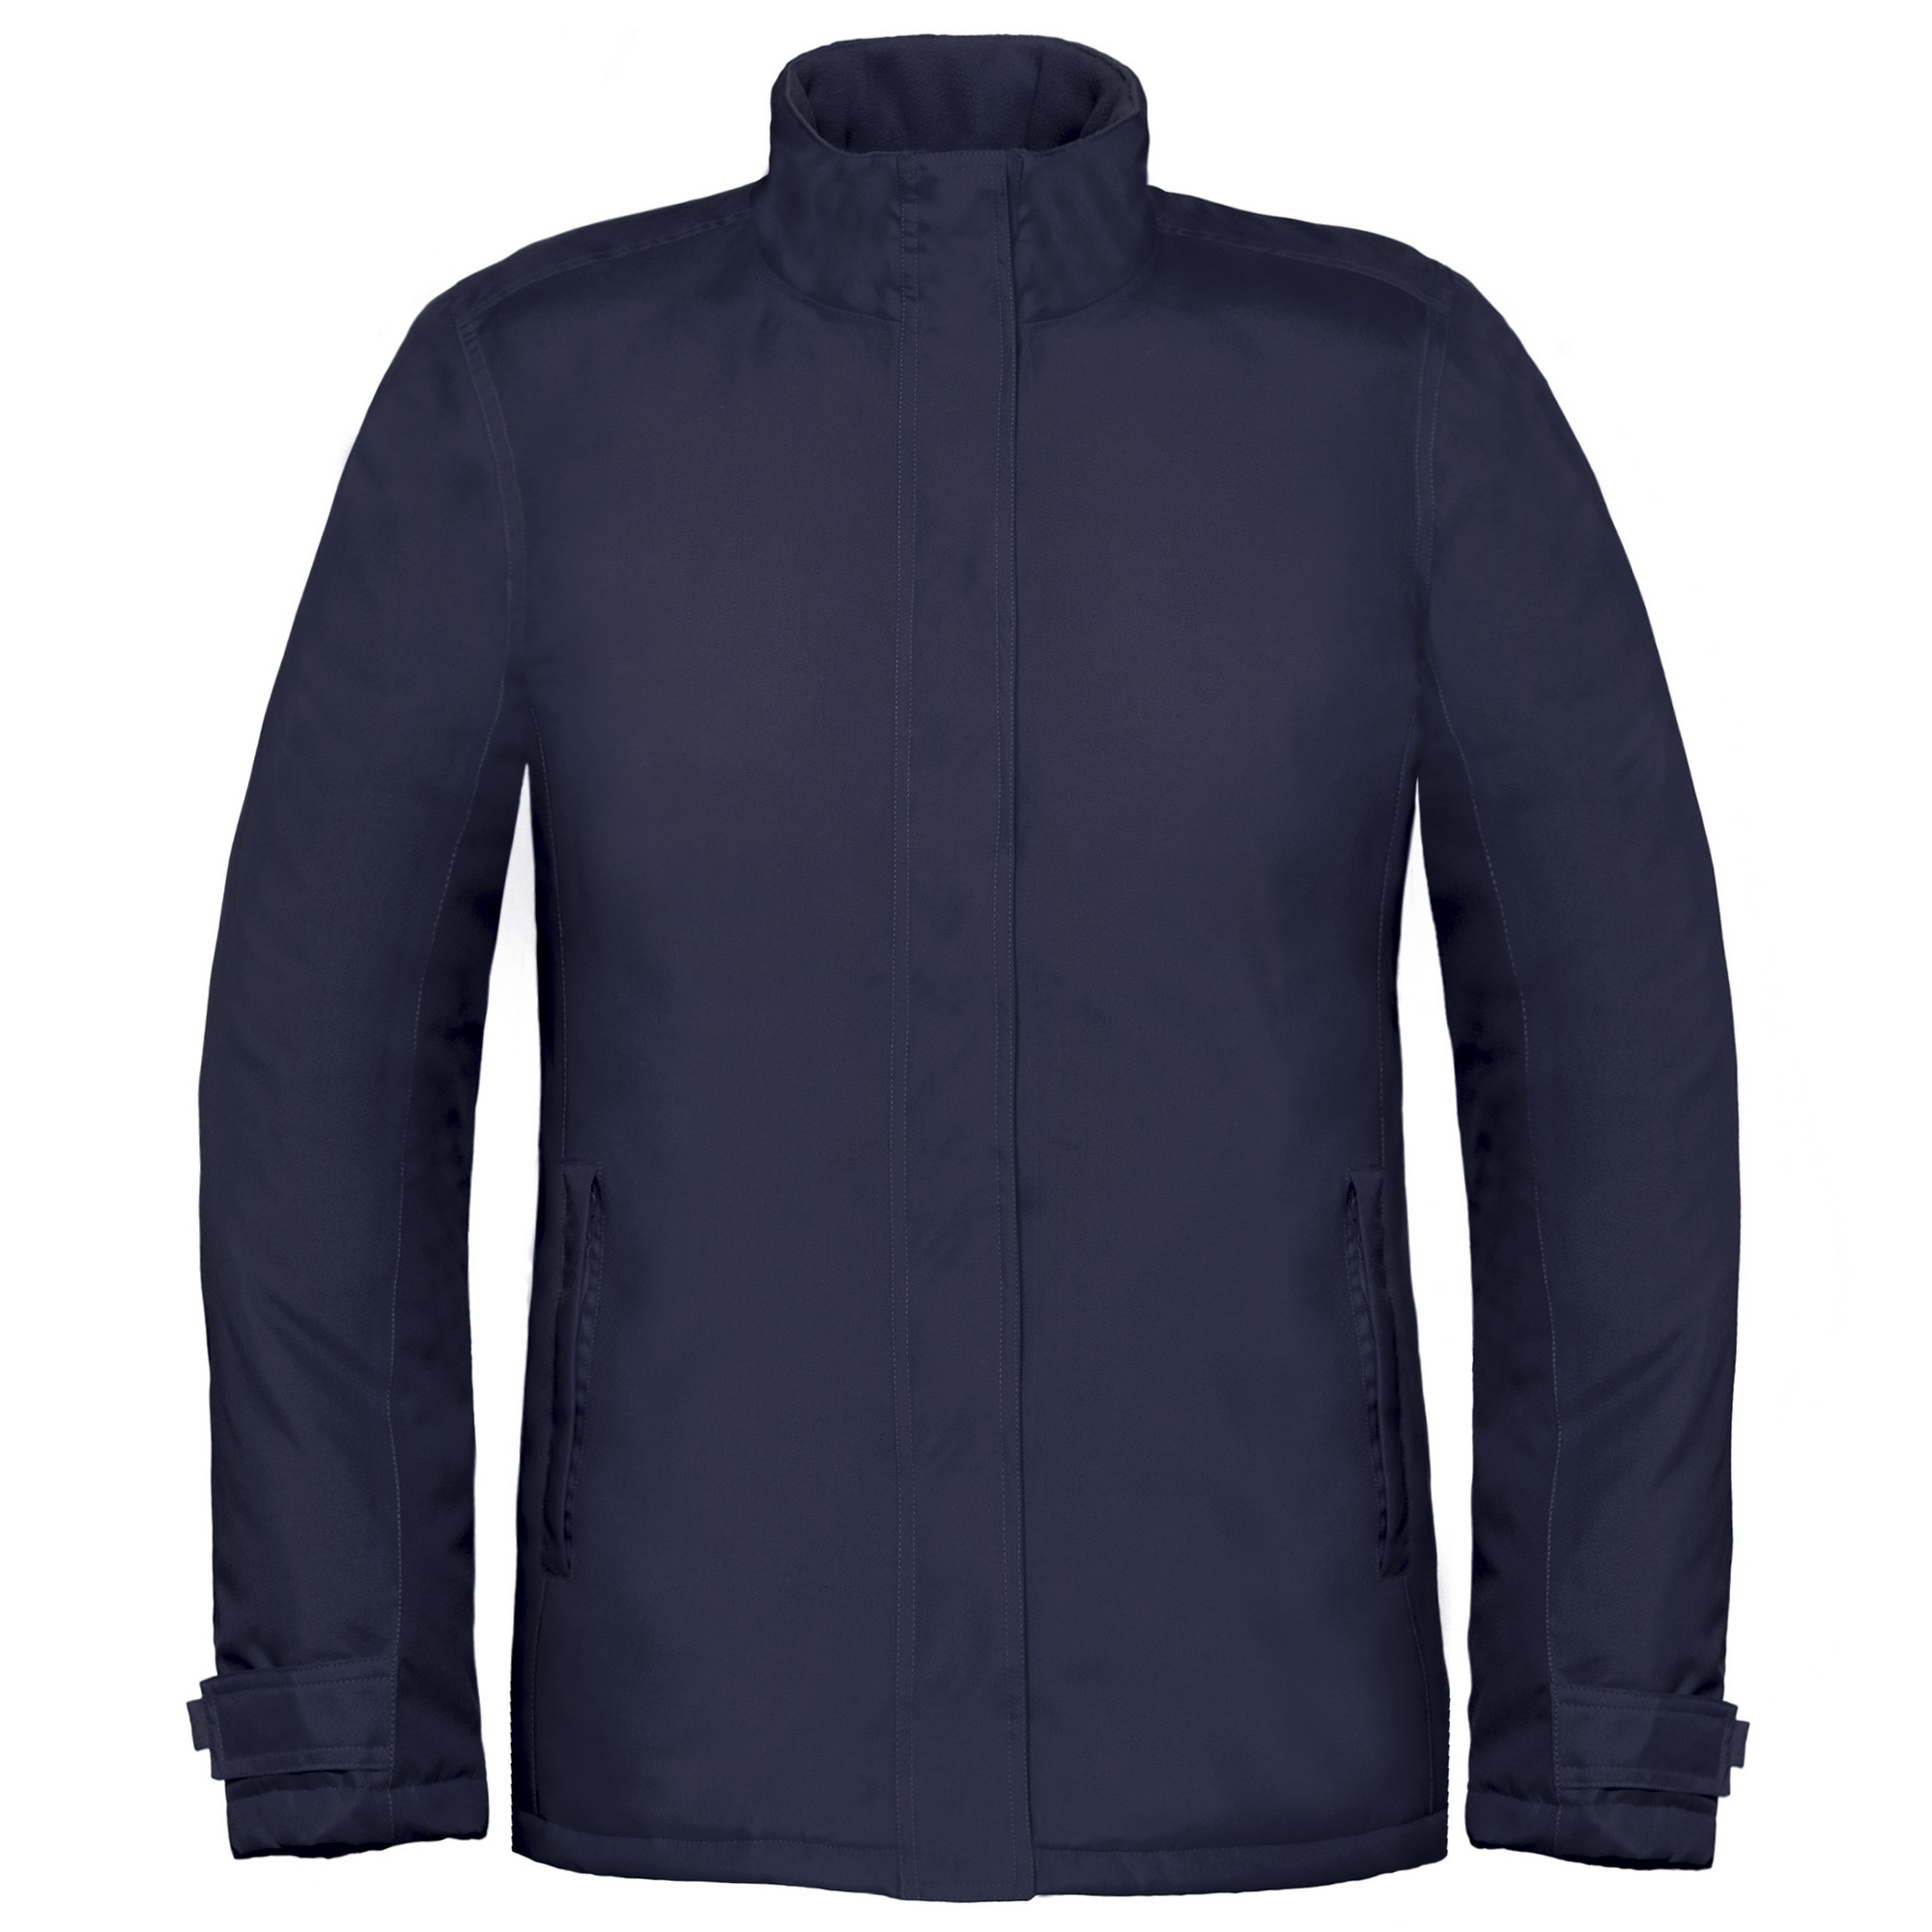 B&C Womens/Ladies Premium Real+ Windproof Waterproof Thermo-Isolated Jacket (L) (Navy Blue)